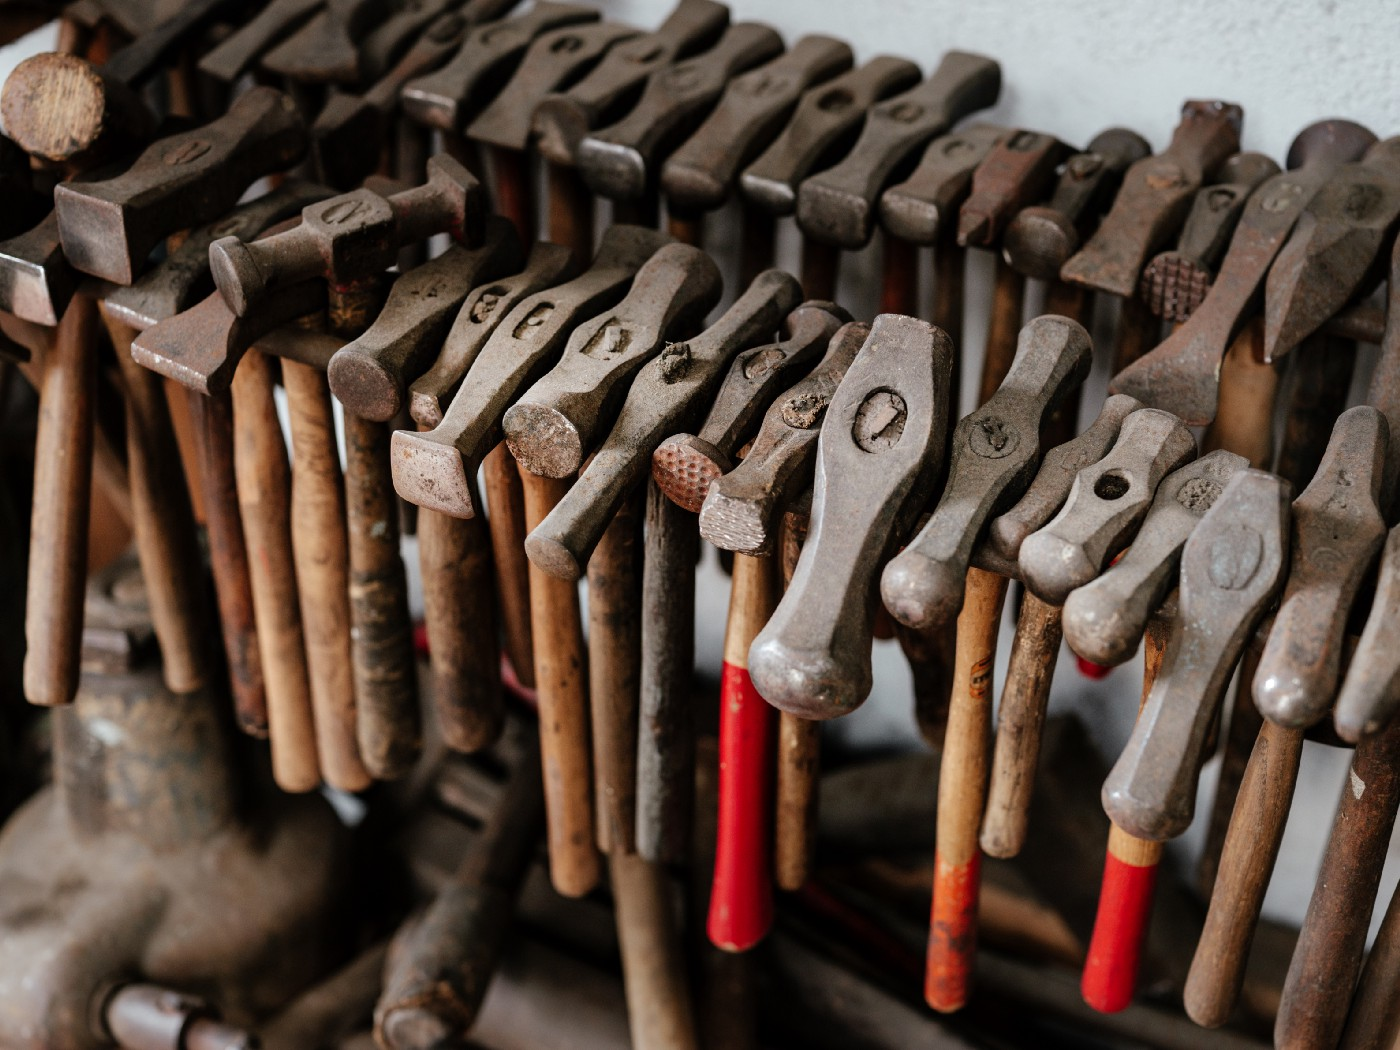 lots of old hammers—because Make is 'one more tool in the toolbox'